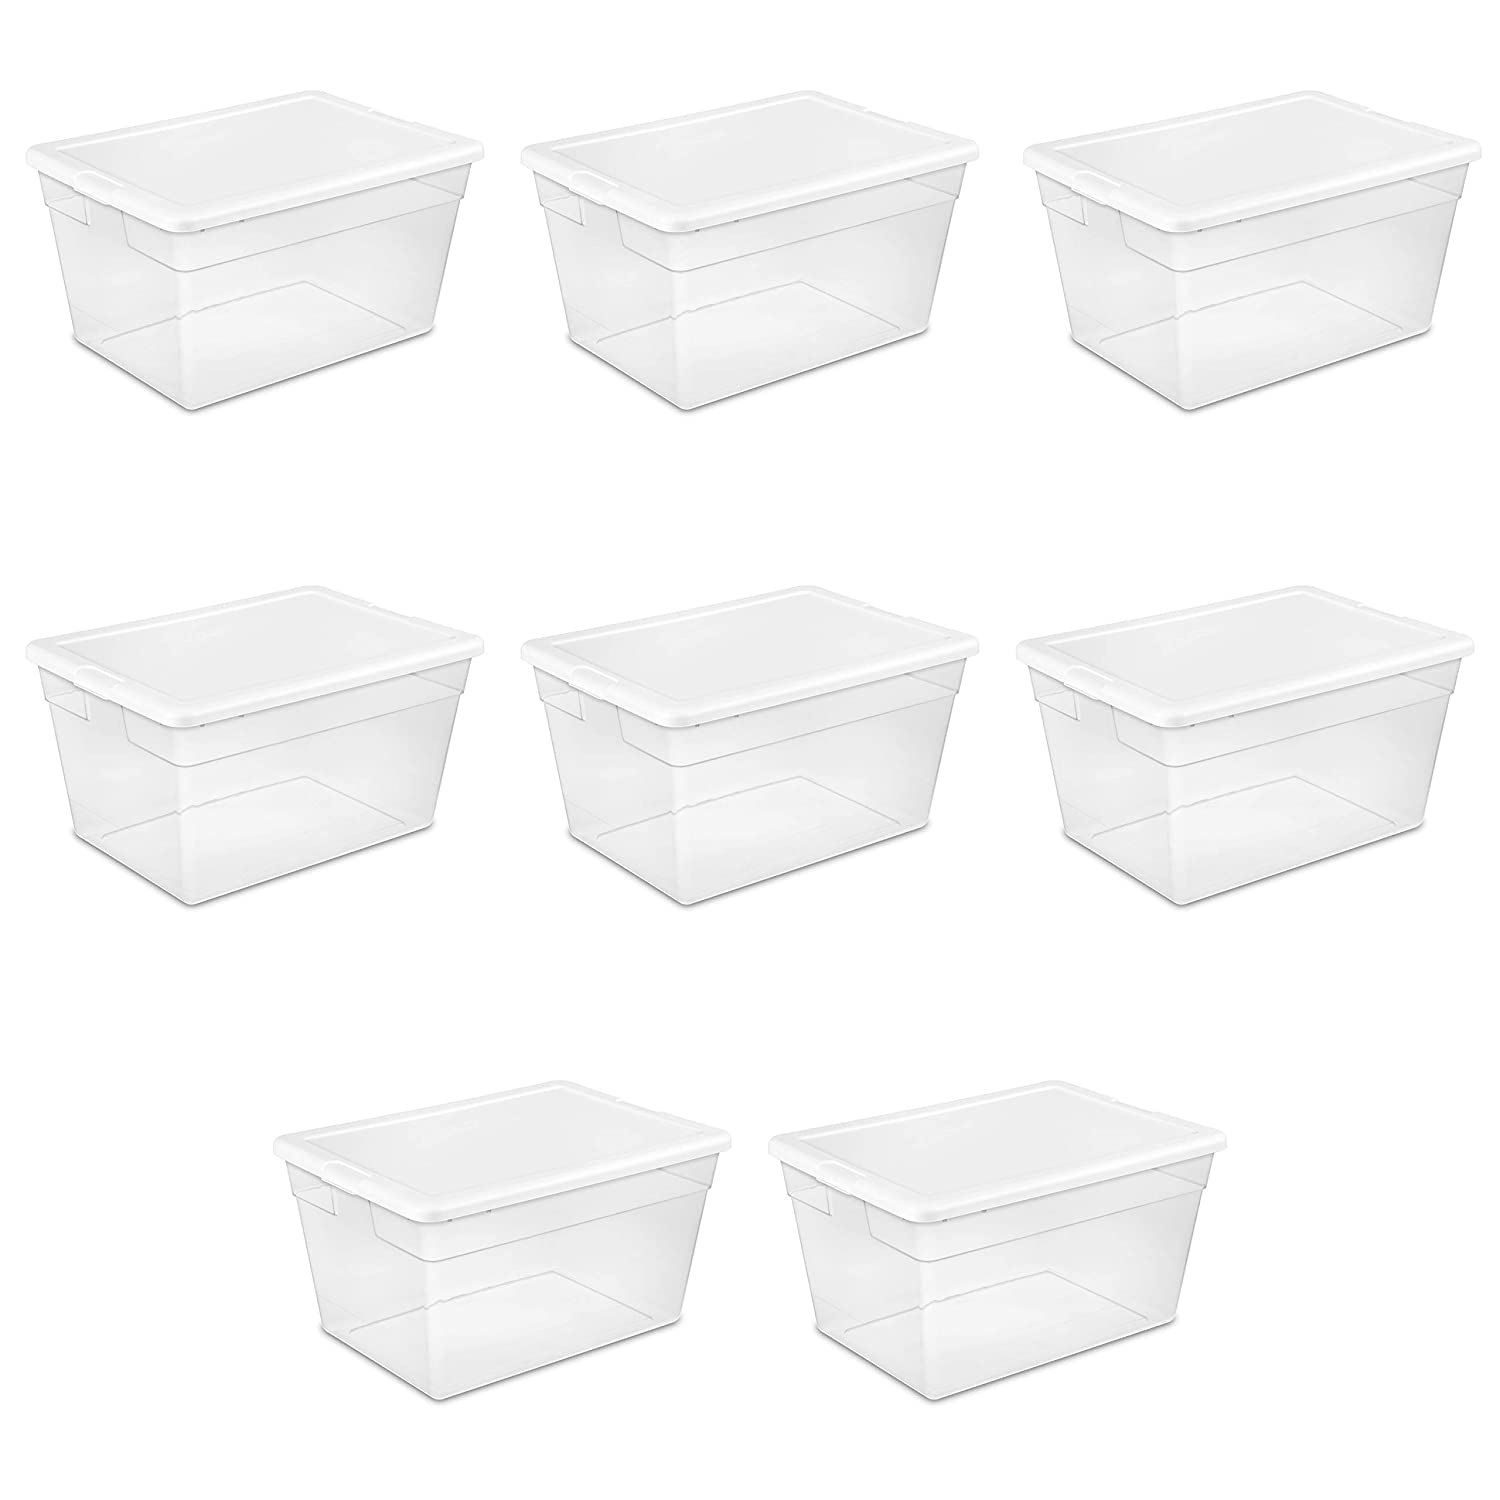 Sterilite 16598008 56 Quart/53 Liter Storage Box, White Lid w/ Clear Base, 8-Pack